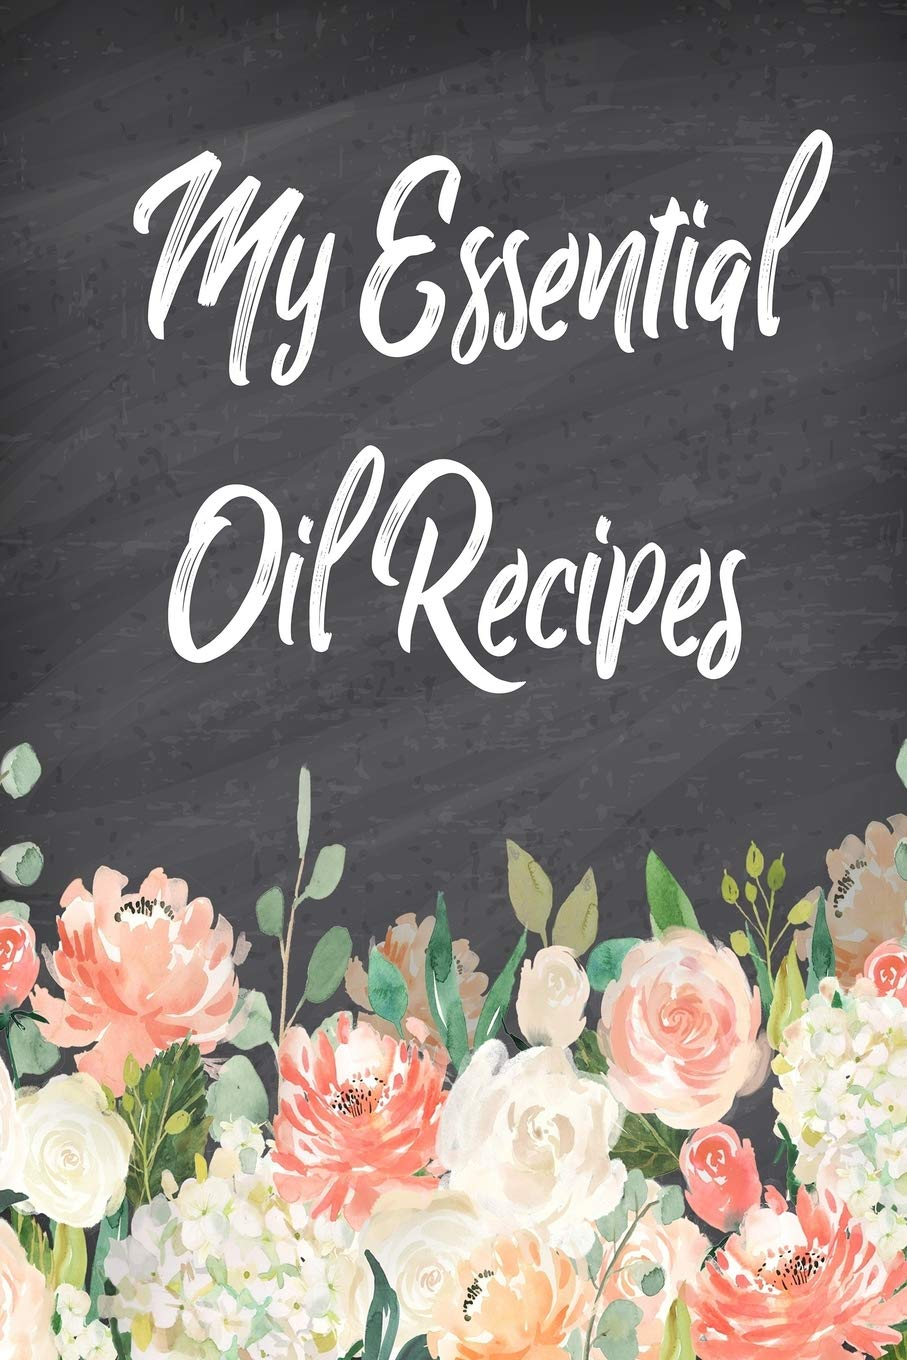 My Essential Oil Recipes: Blank Recipe Book